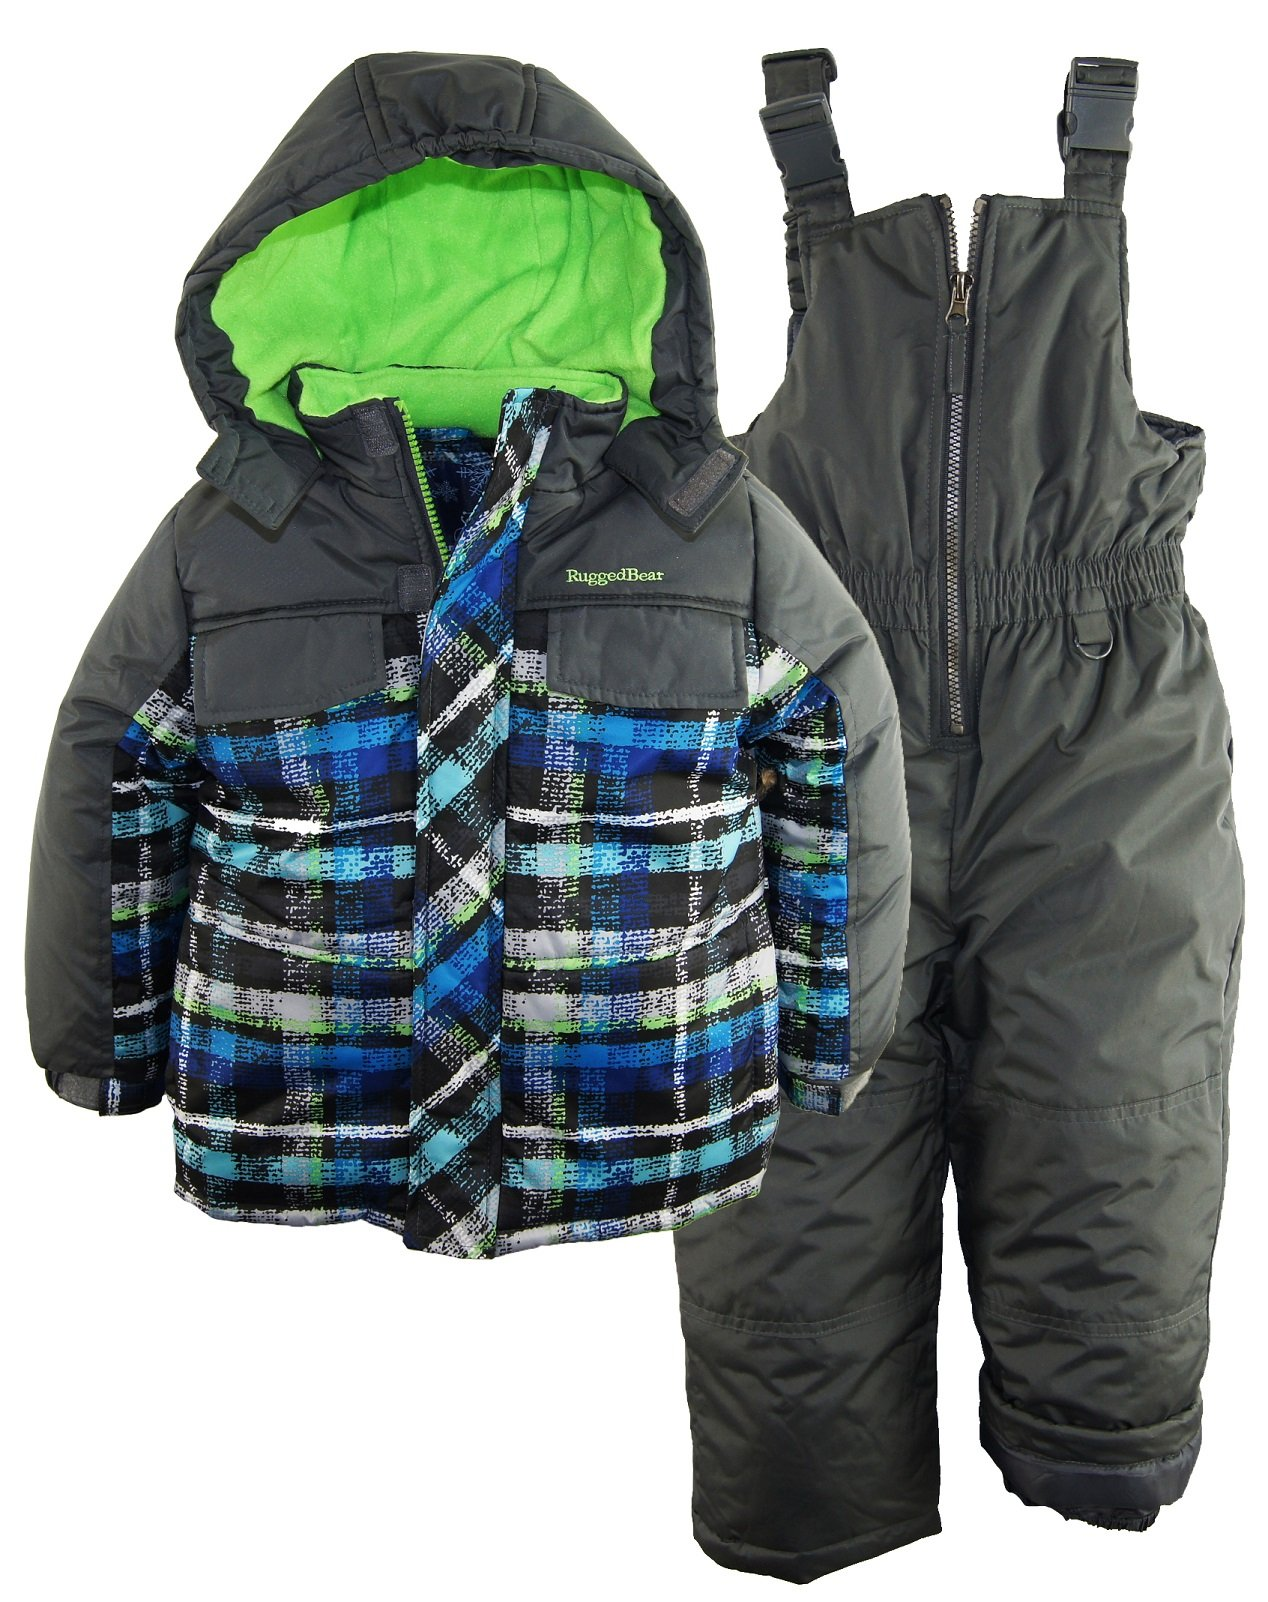 Rugged Bear Baby Boys' AO Plaid Snowsuit, Charcoal, 12 Months